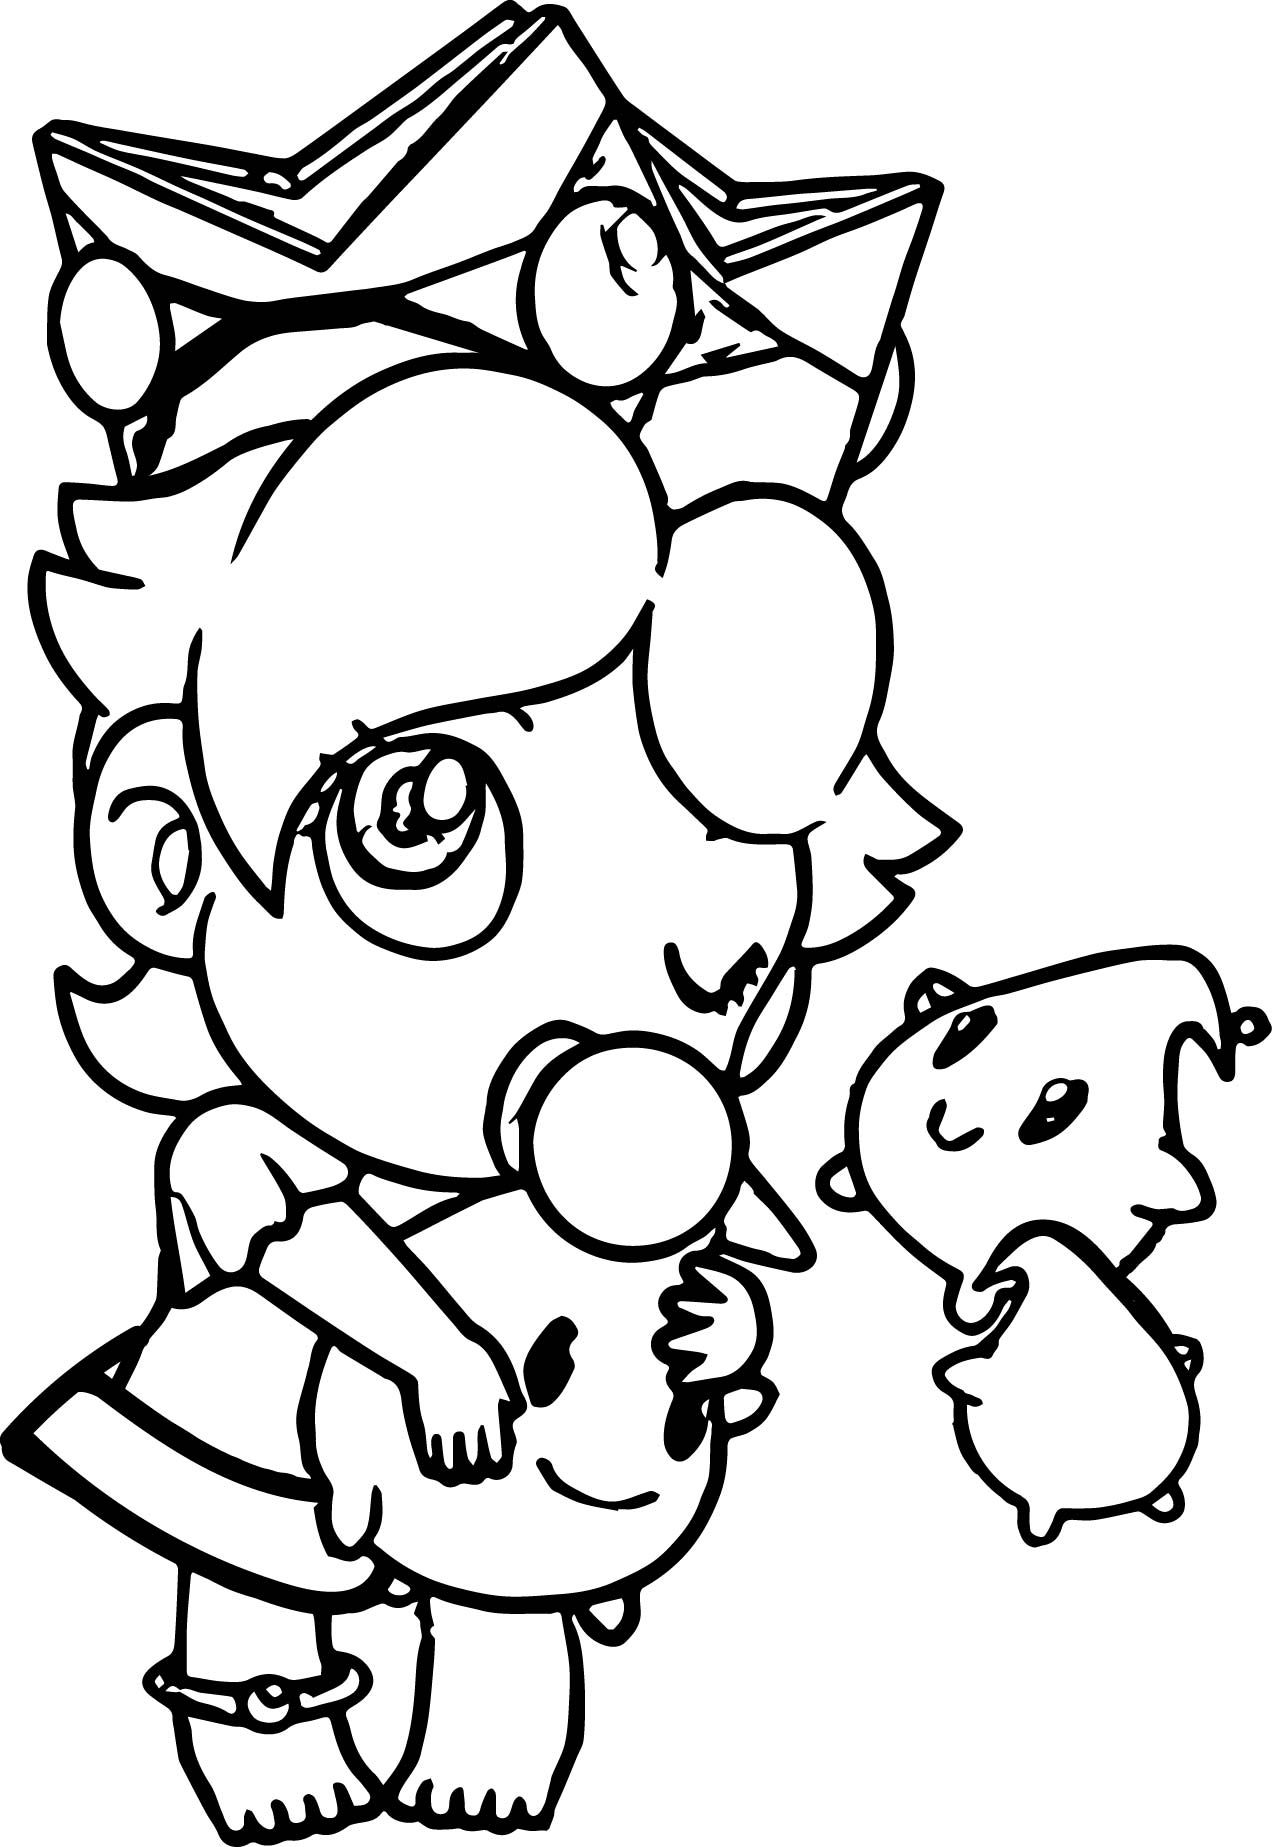 Baby Rosalina Peach Daisy And As Babies Coloring Page